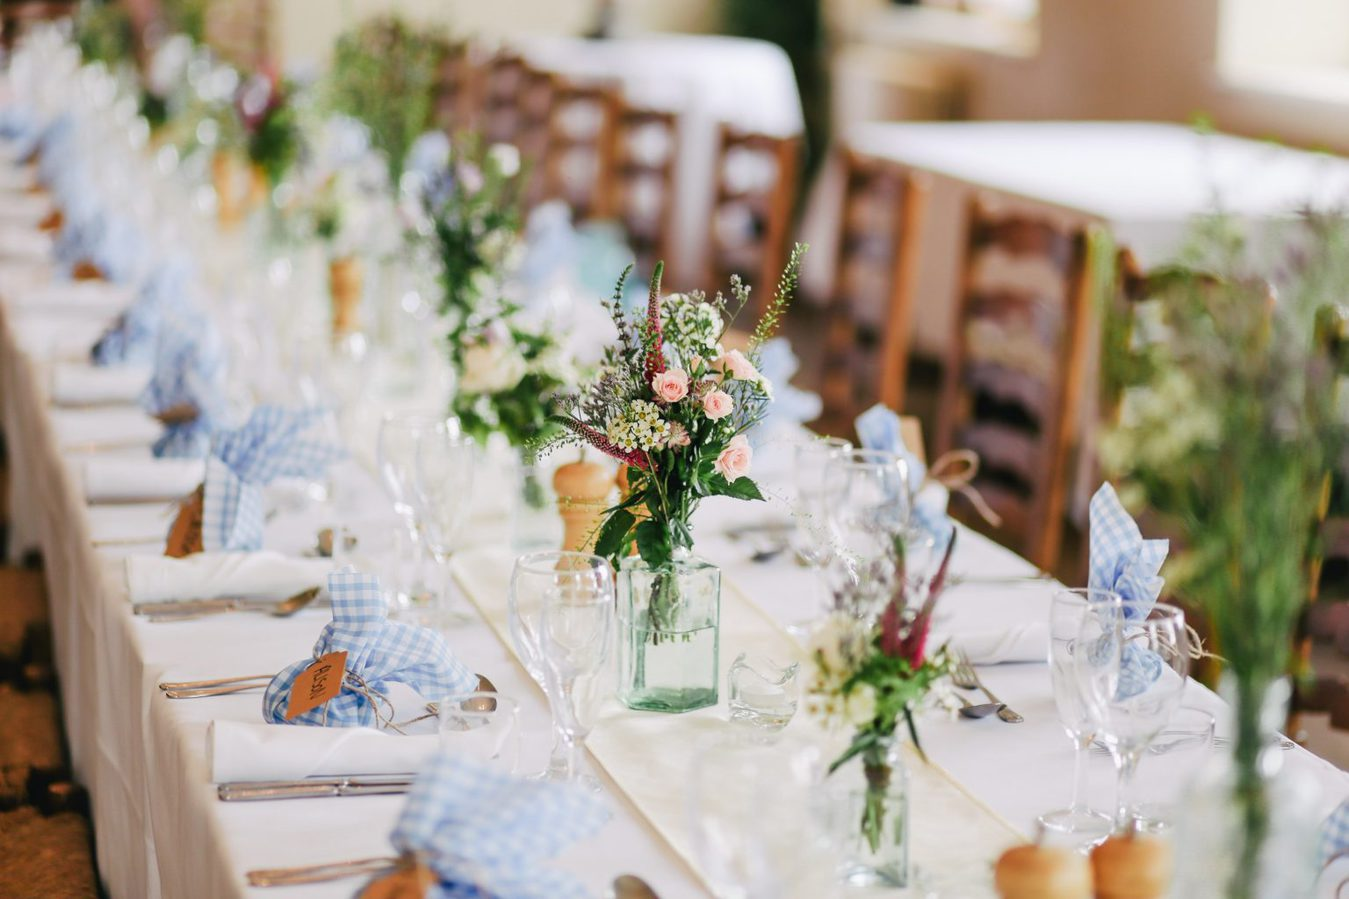 long table laid for wedding reception